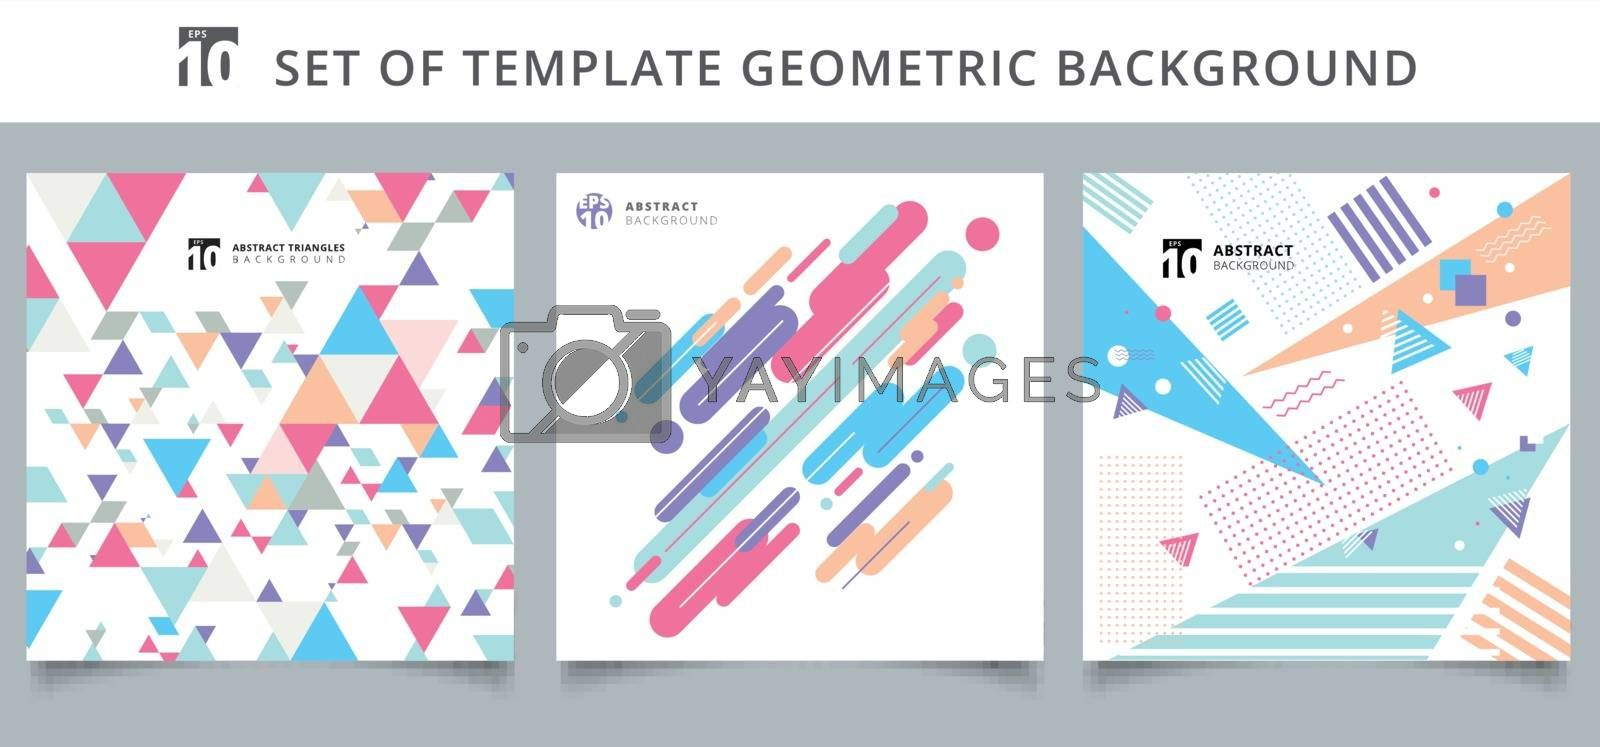 Set template geometric pattern covers design. You can use for print, ad, brochure, leaflet, flyer, poster, magazine, banner, website. Vector illustration